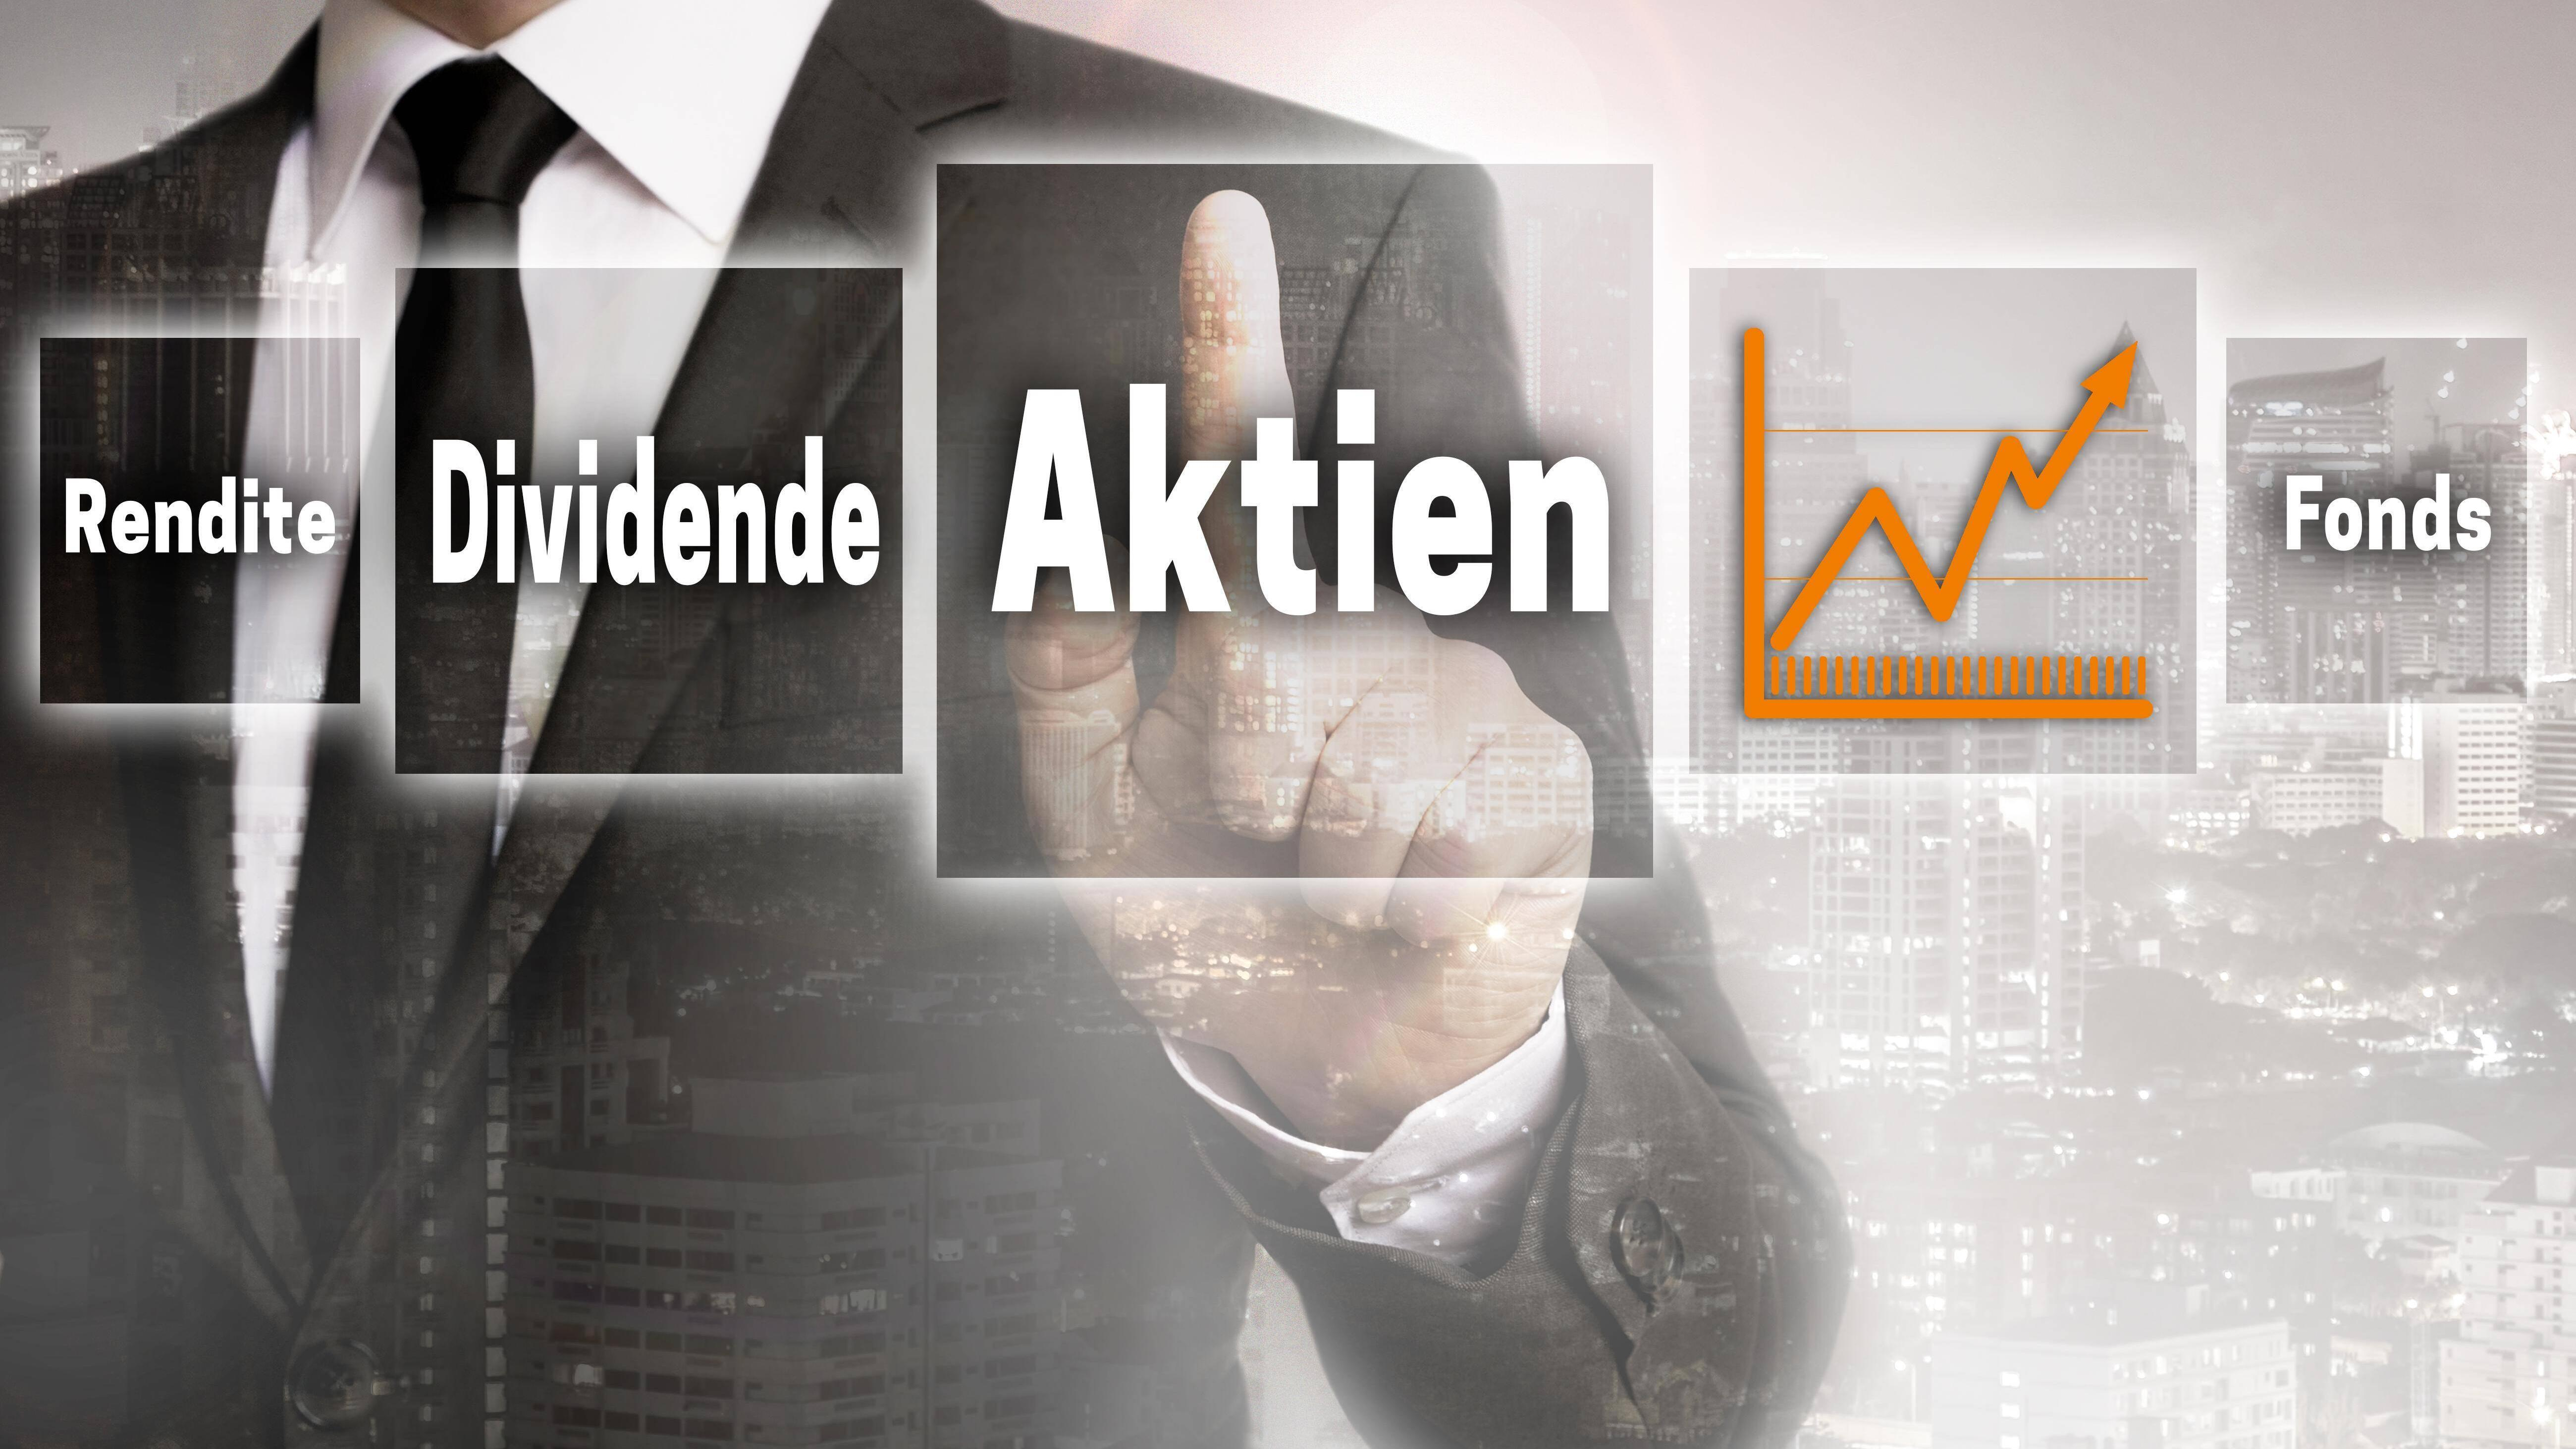 Aktien (in german shares, dividend, fund, yield) Businessman with city background concept Copyright: x8vfanPx Panthermedia28257187